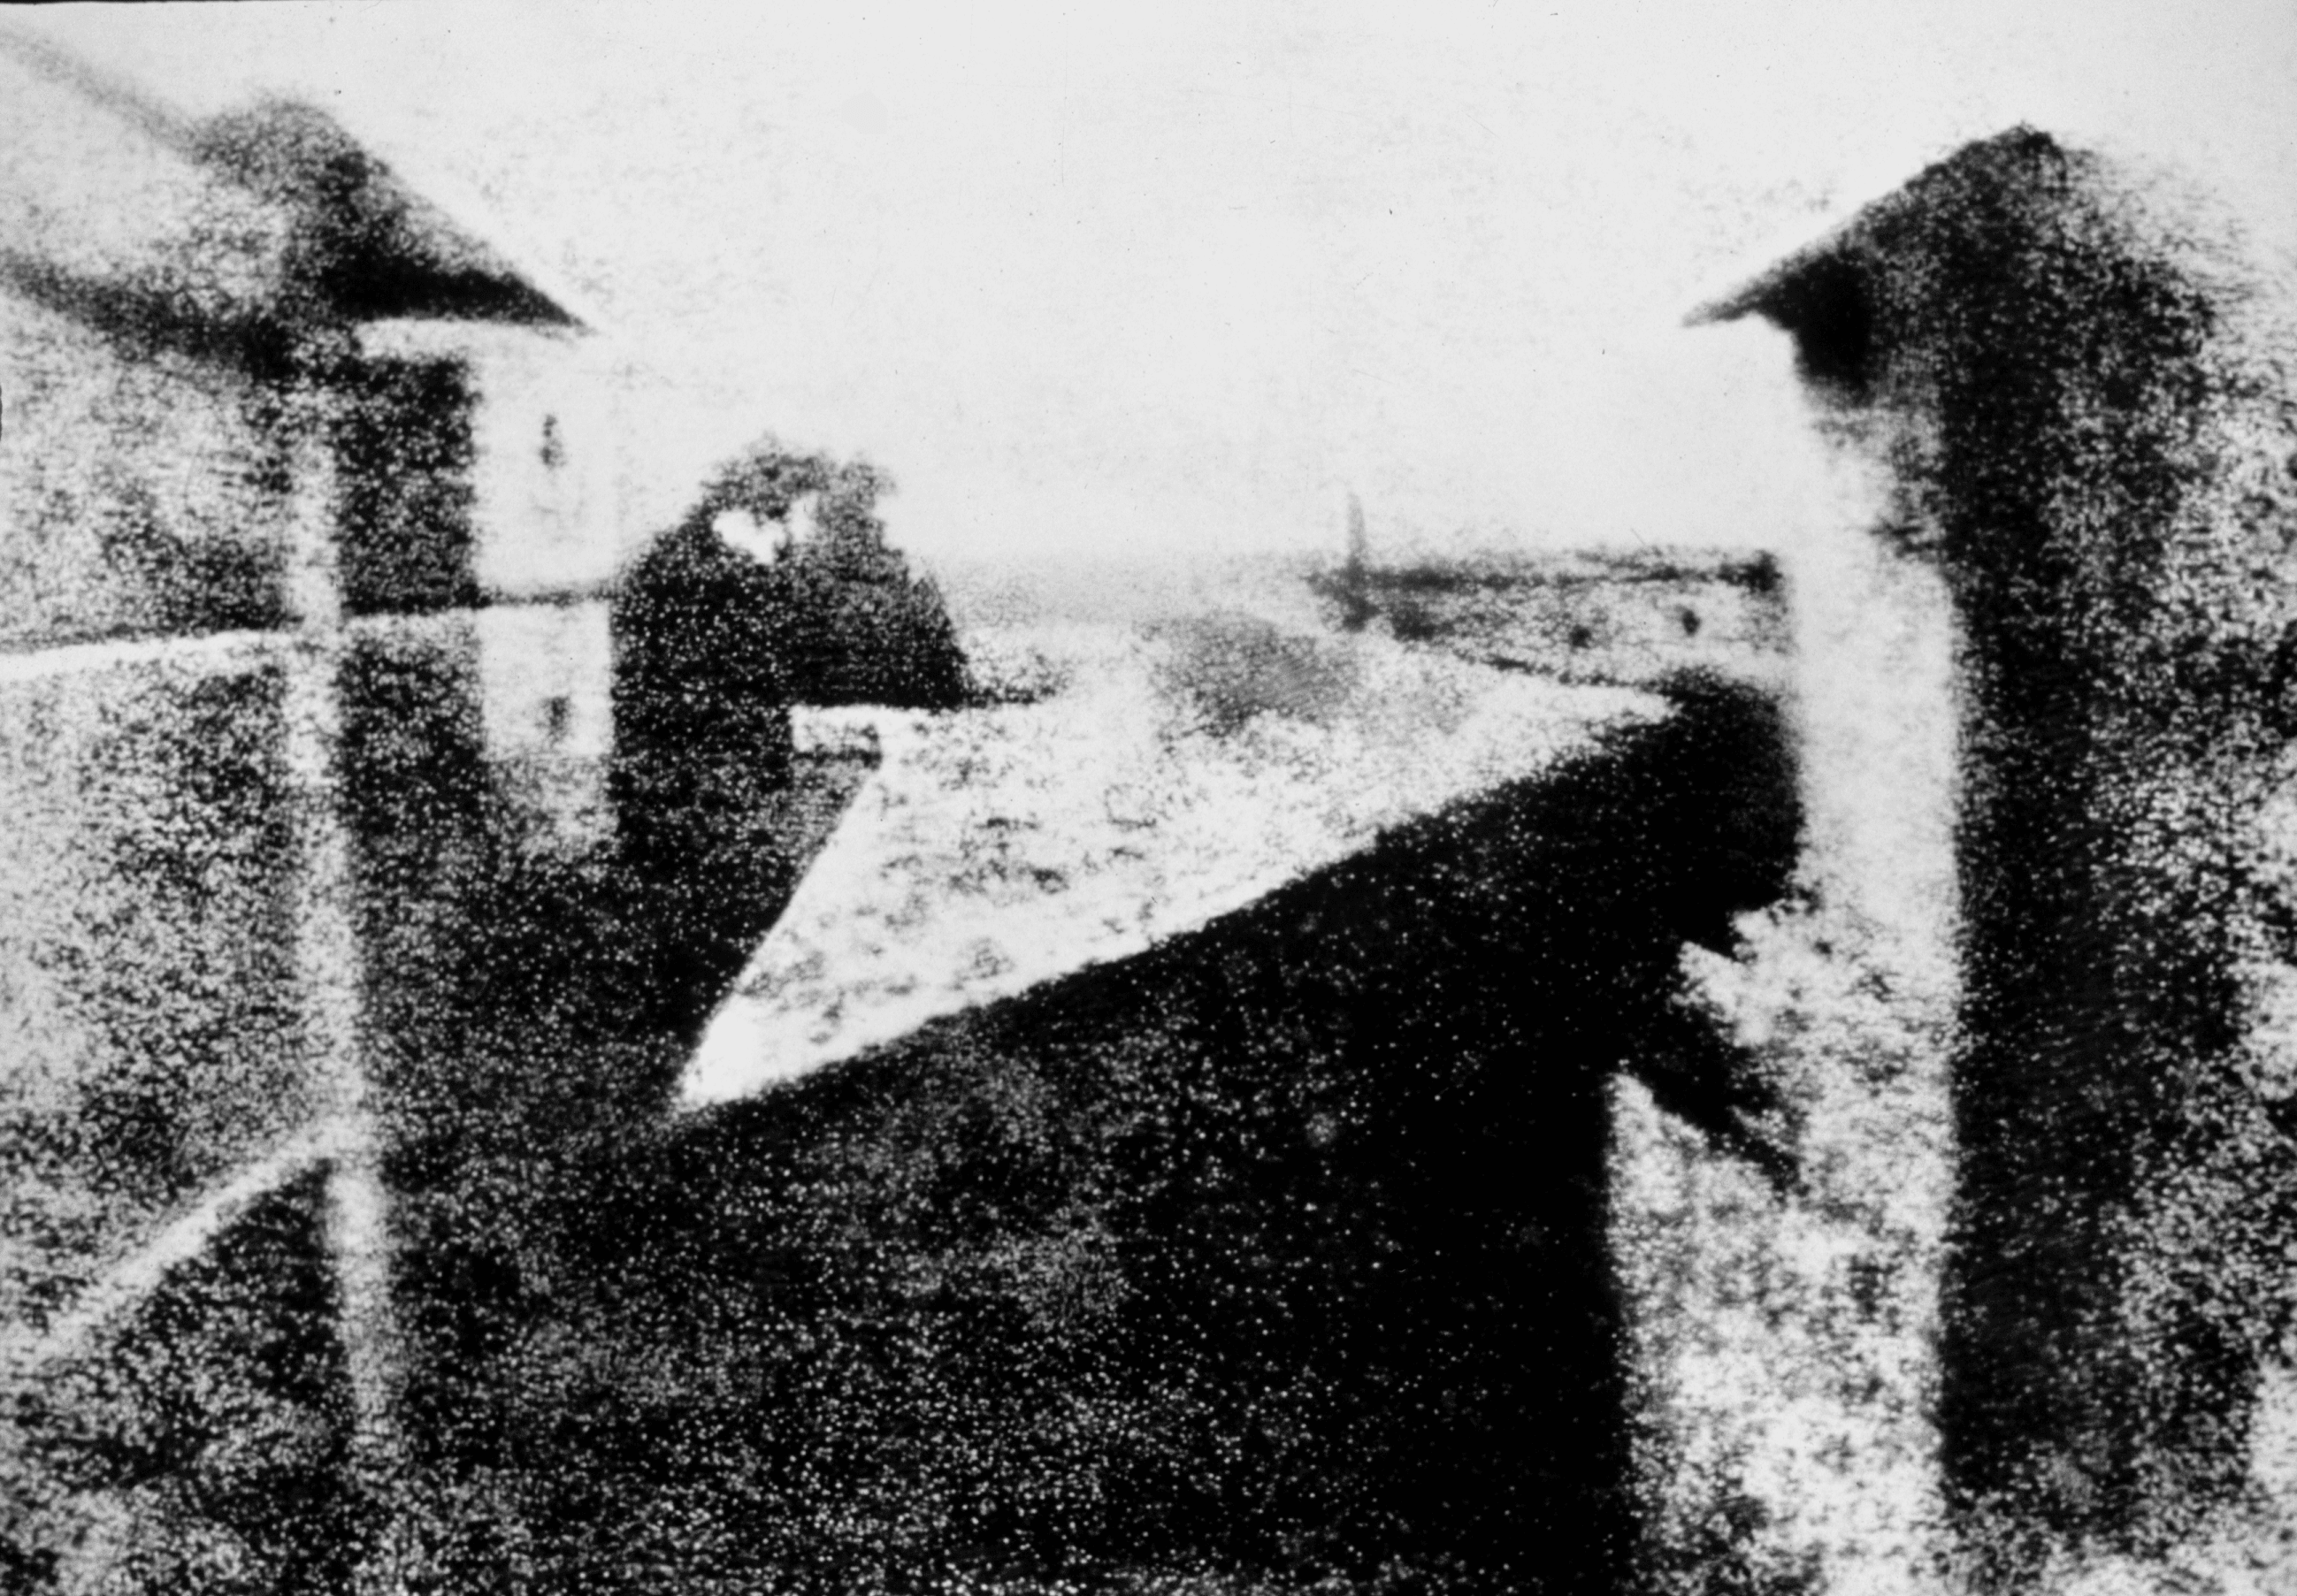 The world's oldest surviving photograph, from 1826